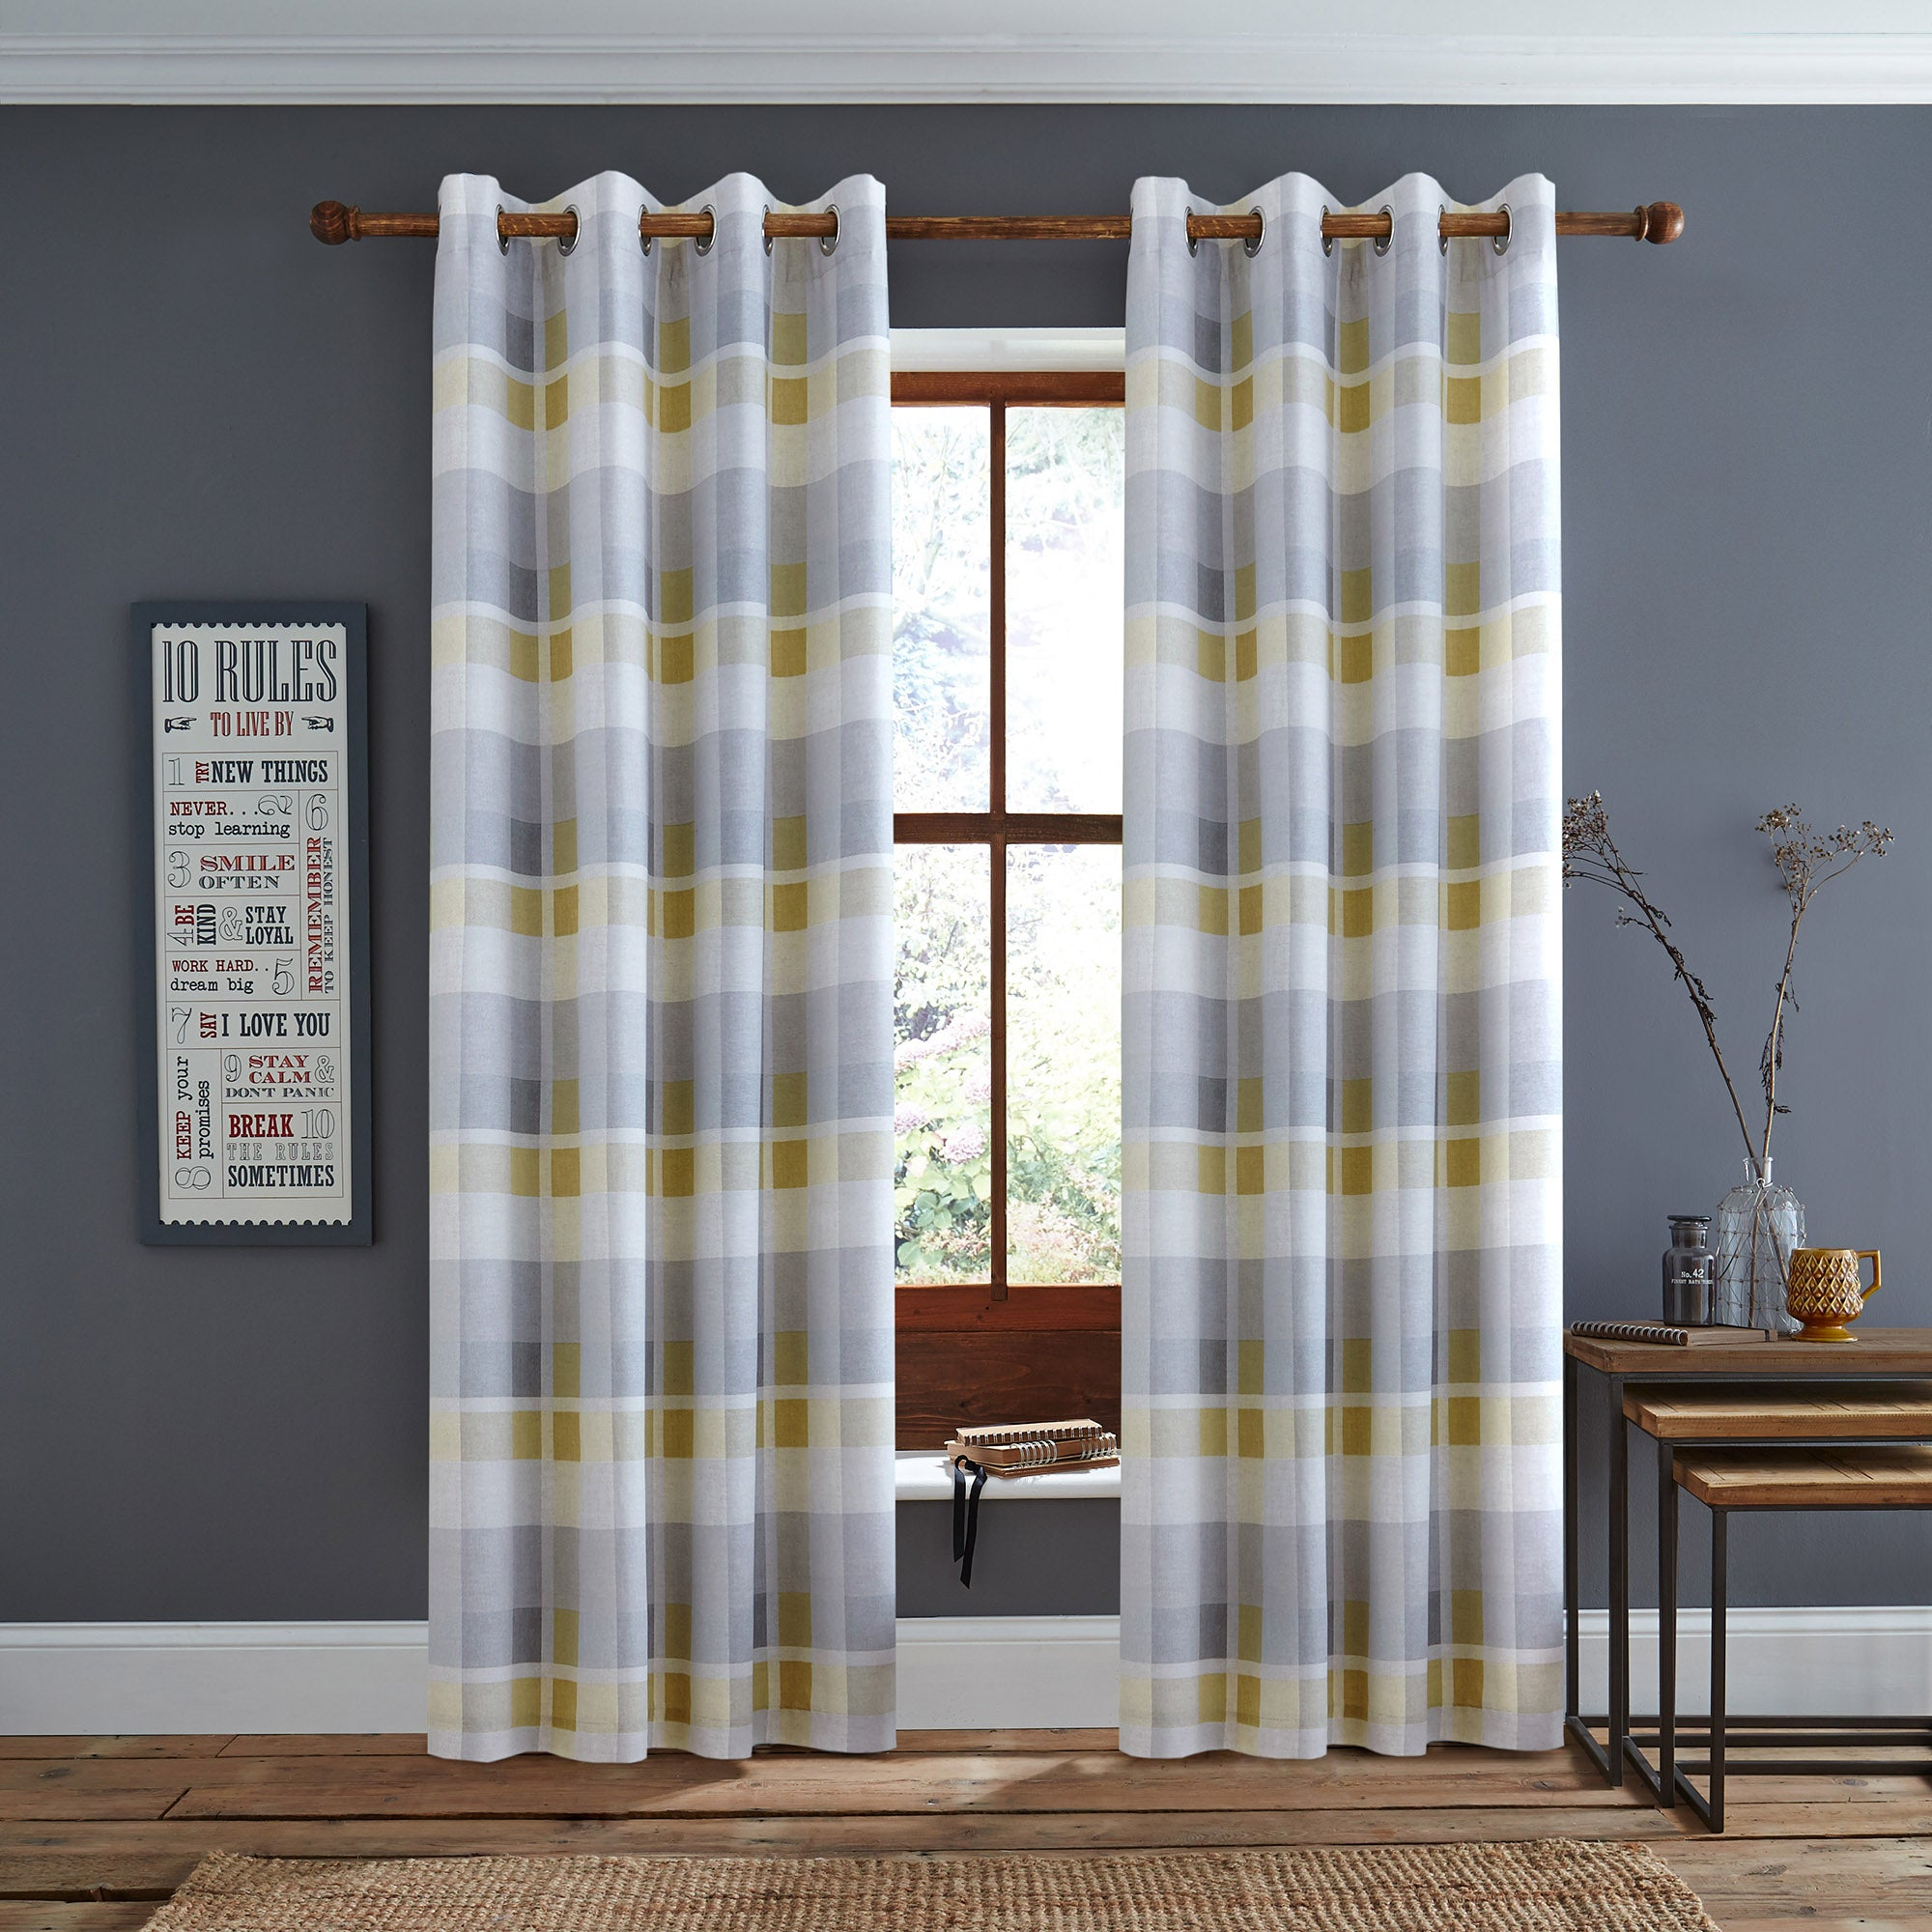 Photo of Ochre berwick check eyelet curtains ochre -yellow-